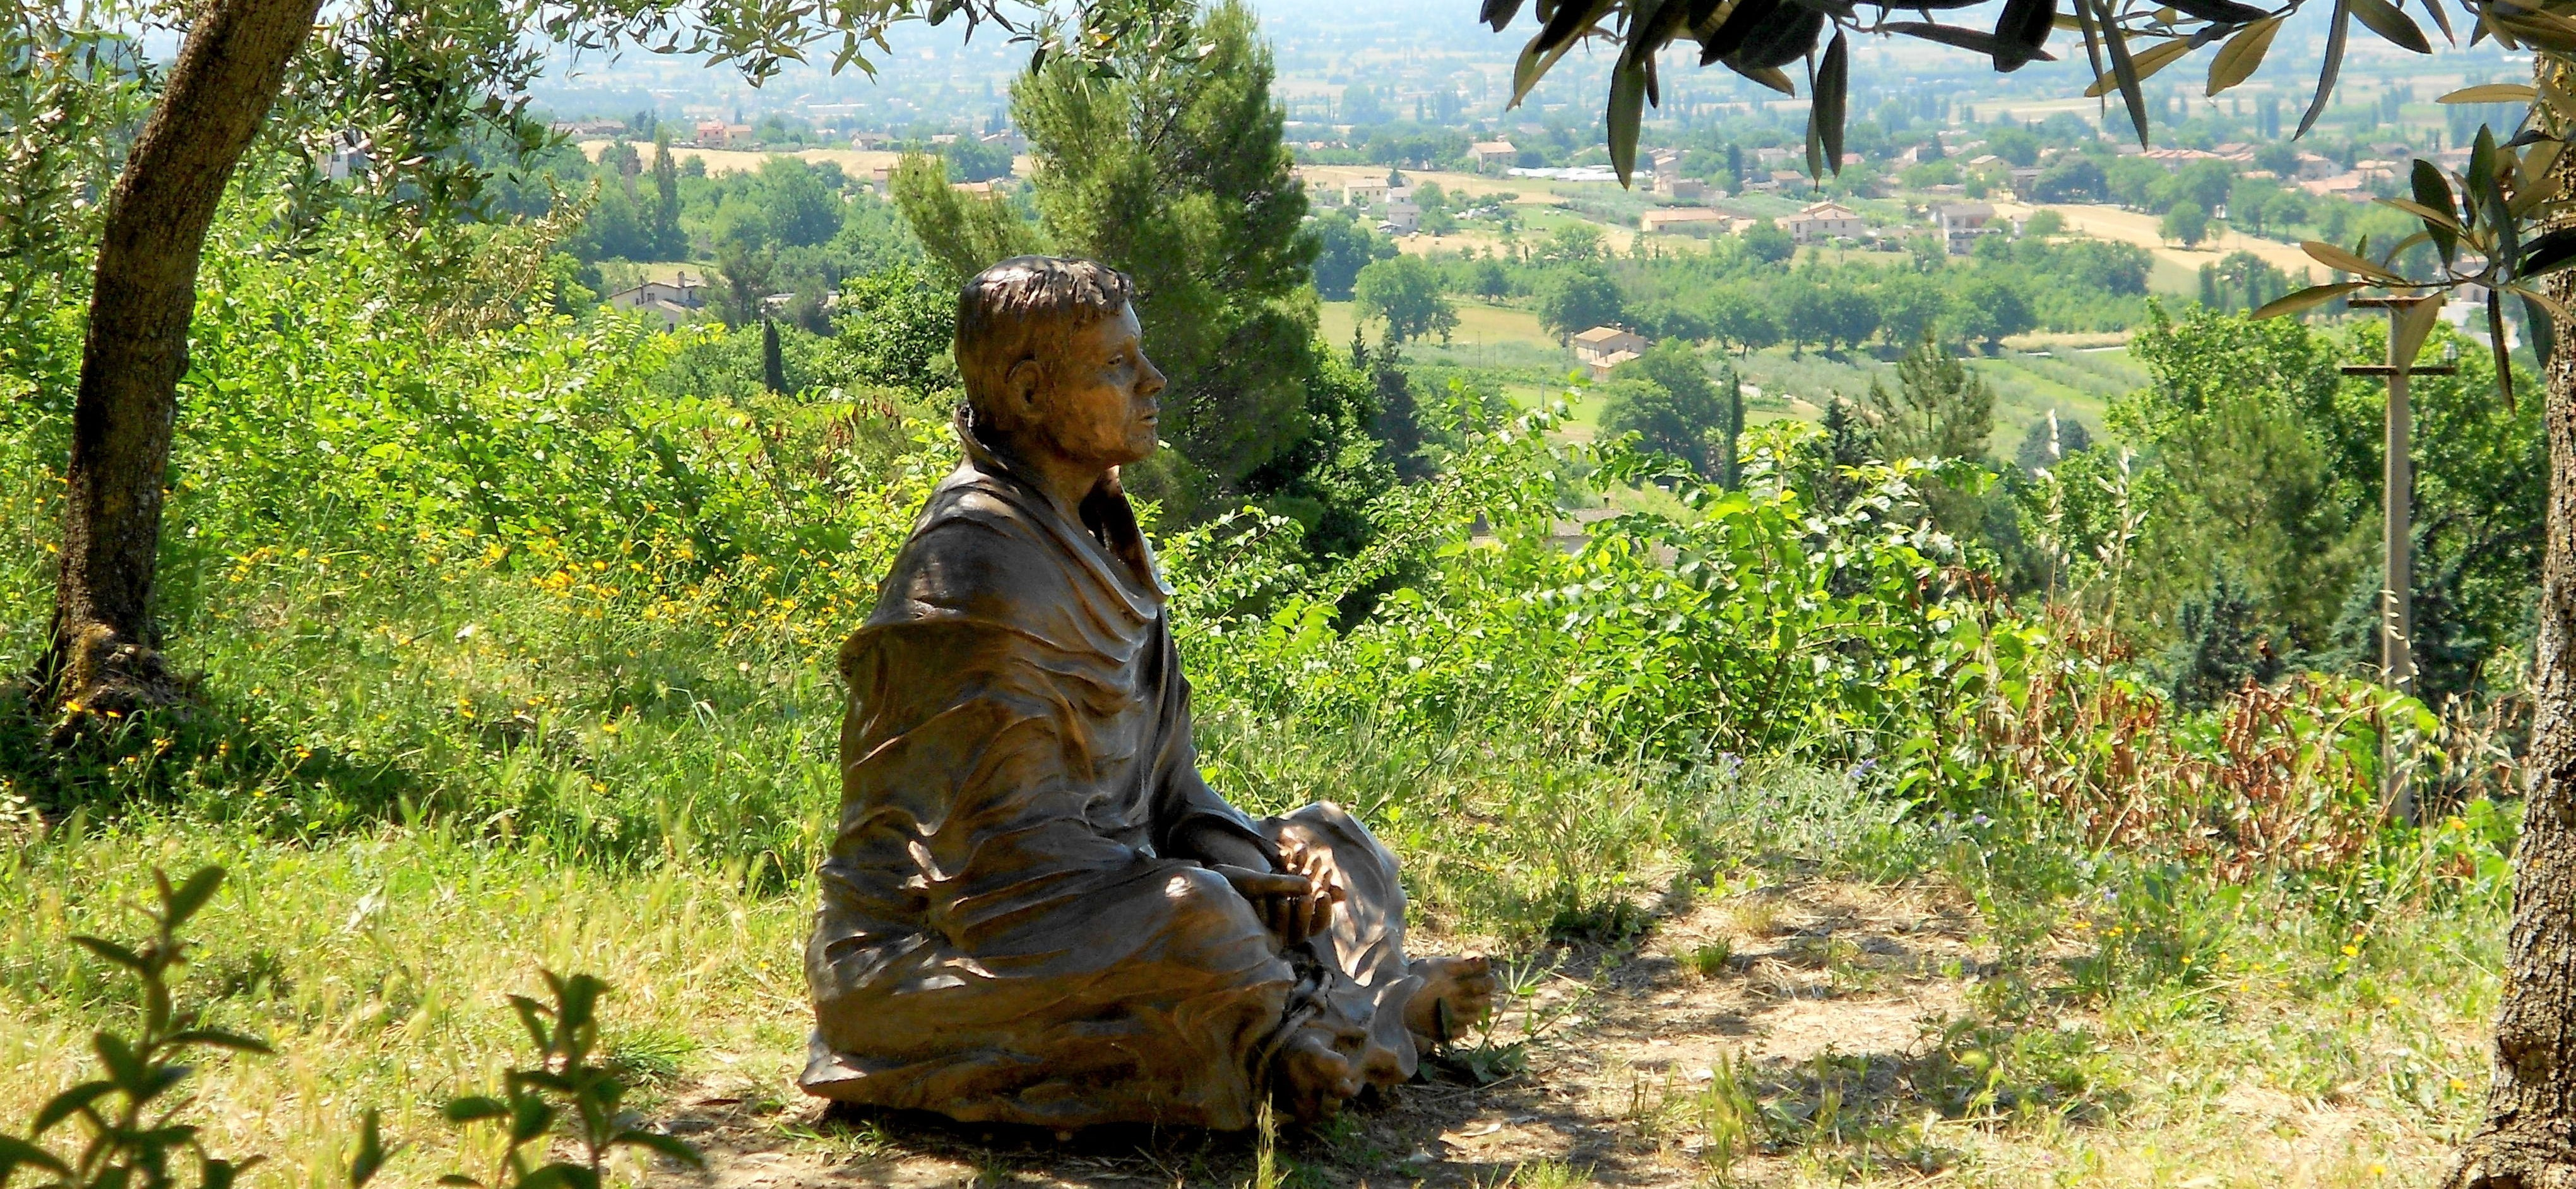 statue of St. Francis in San Damiano